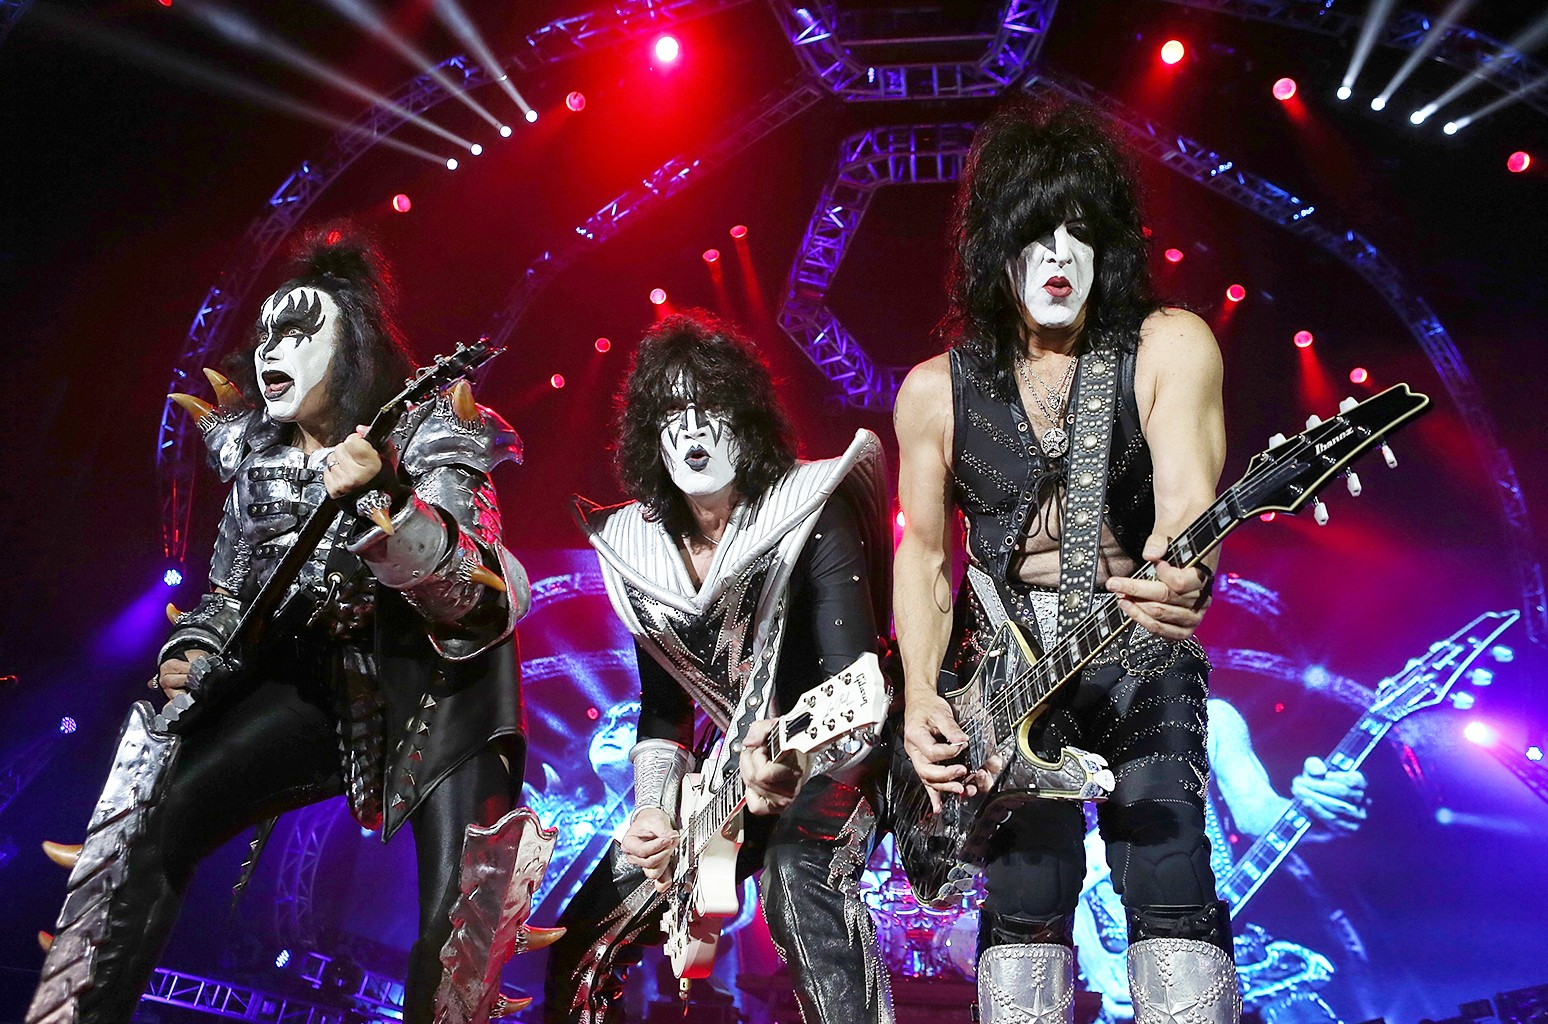 KISS perform at Perth Arena on Oct. 3, 2015.